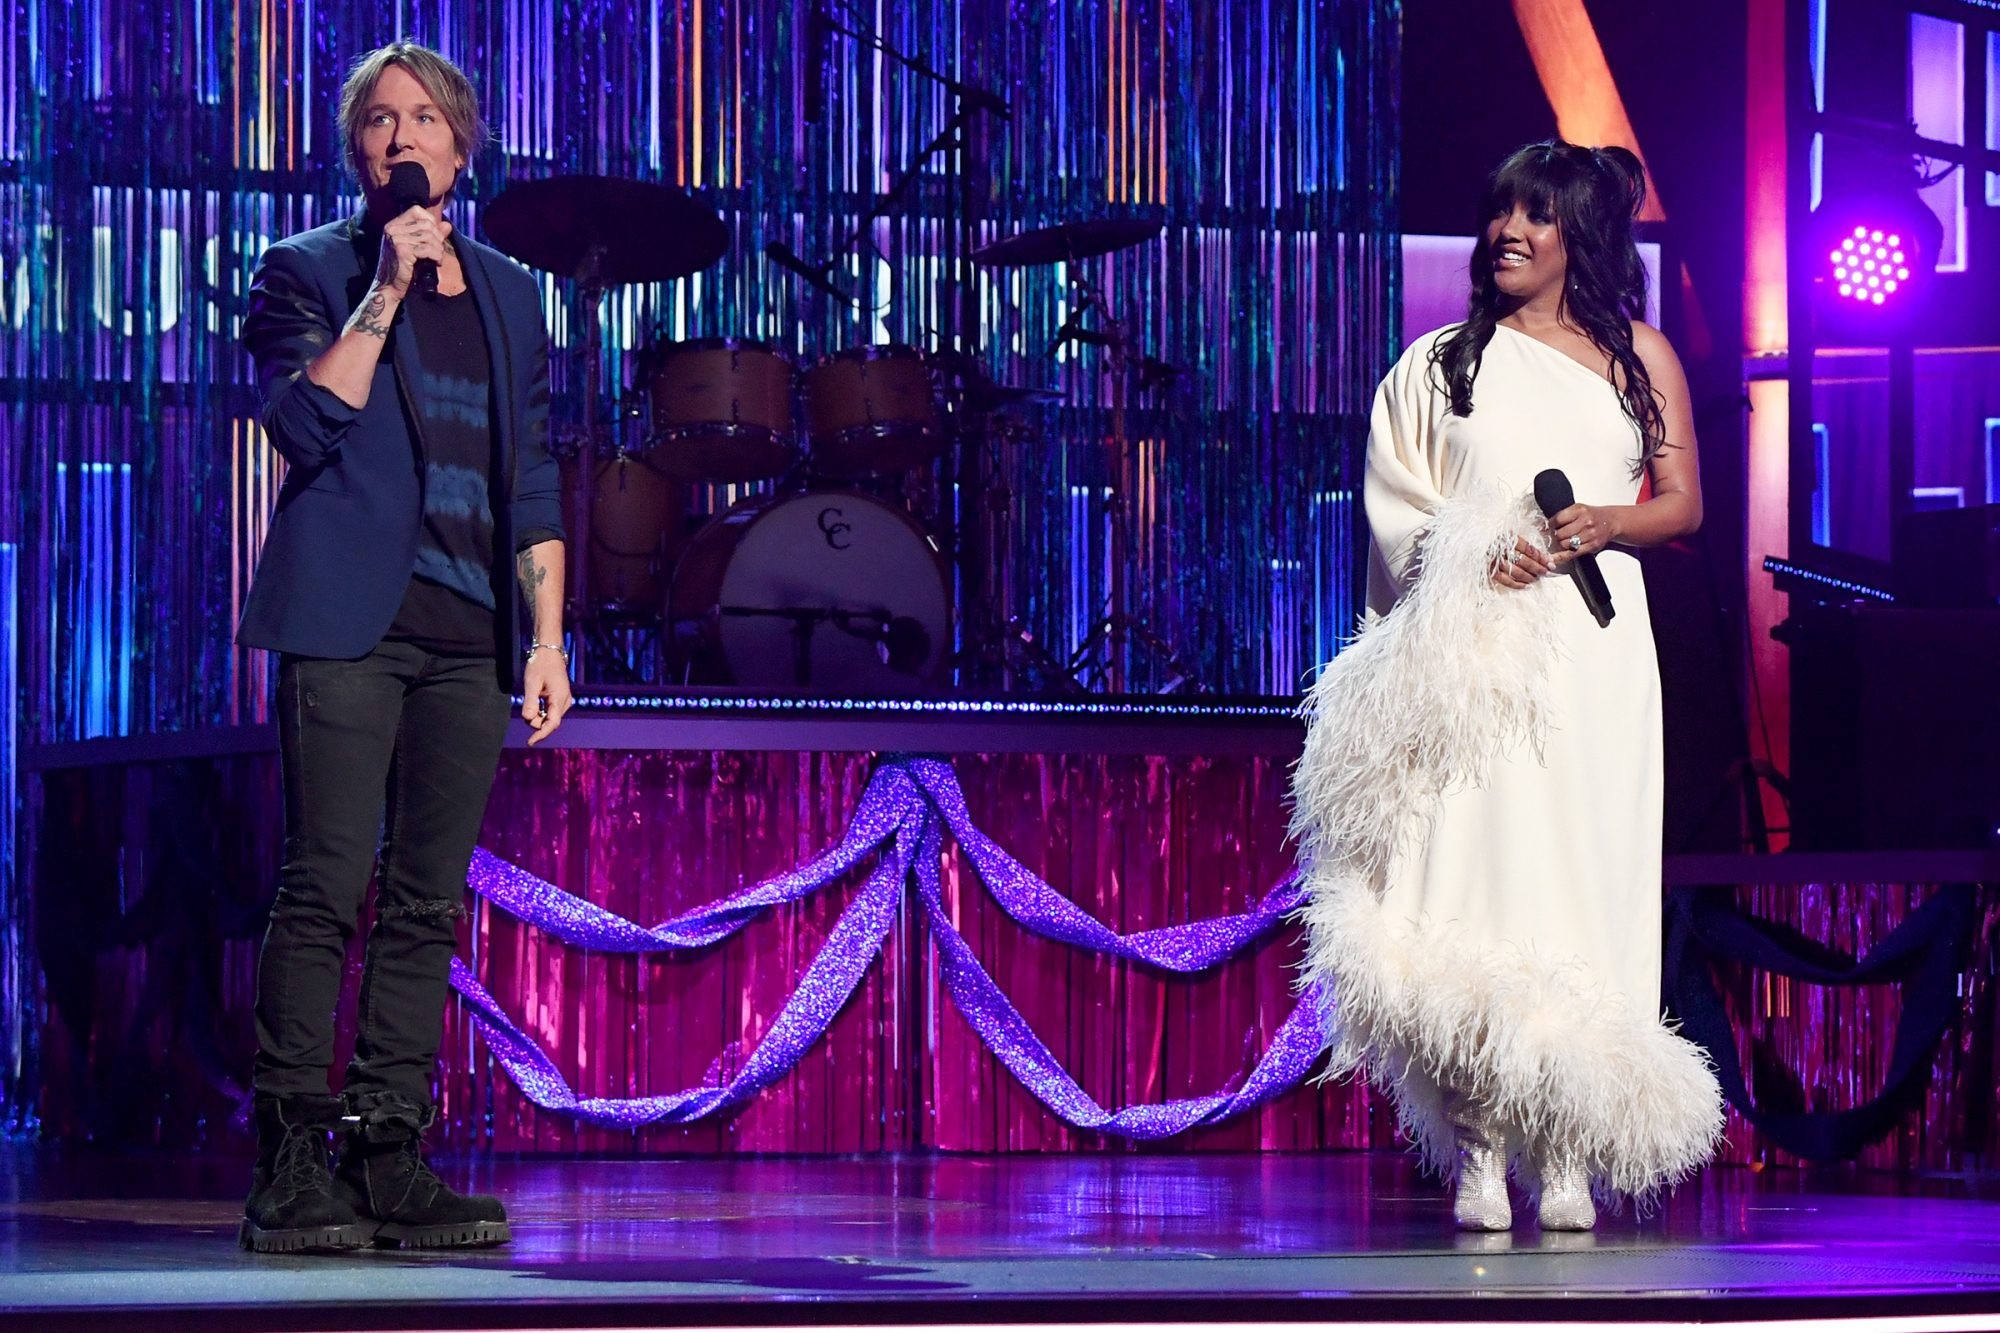 co-hosts Keith Urban and Mickey Guyton speak onstage at the 56th Academy of Country Music Awards